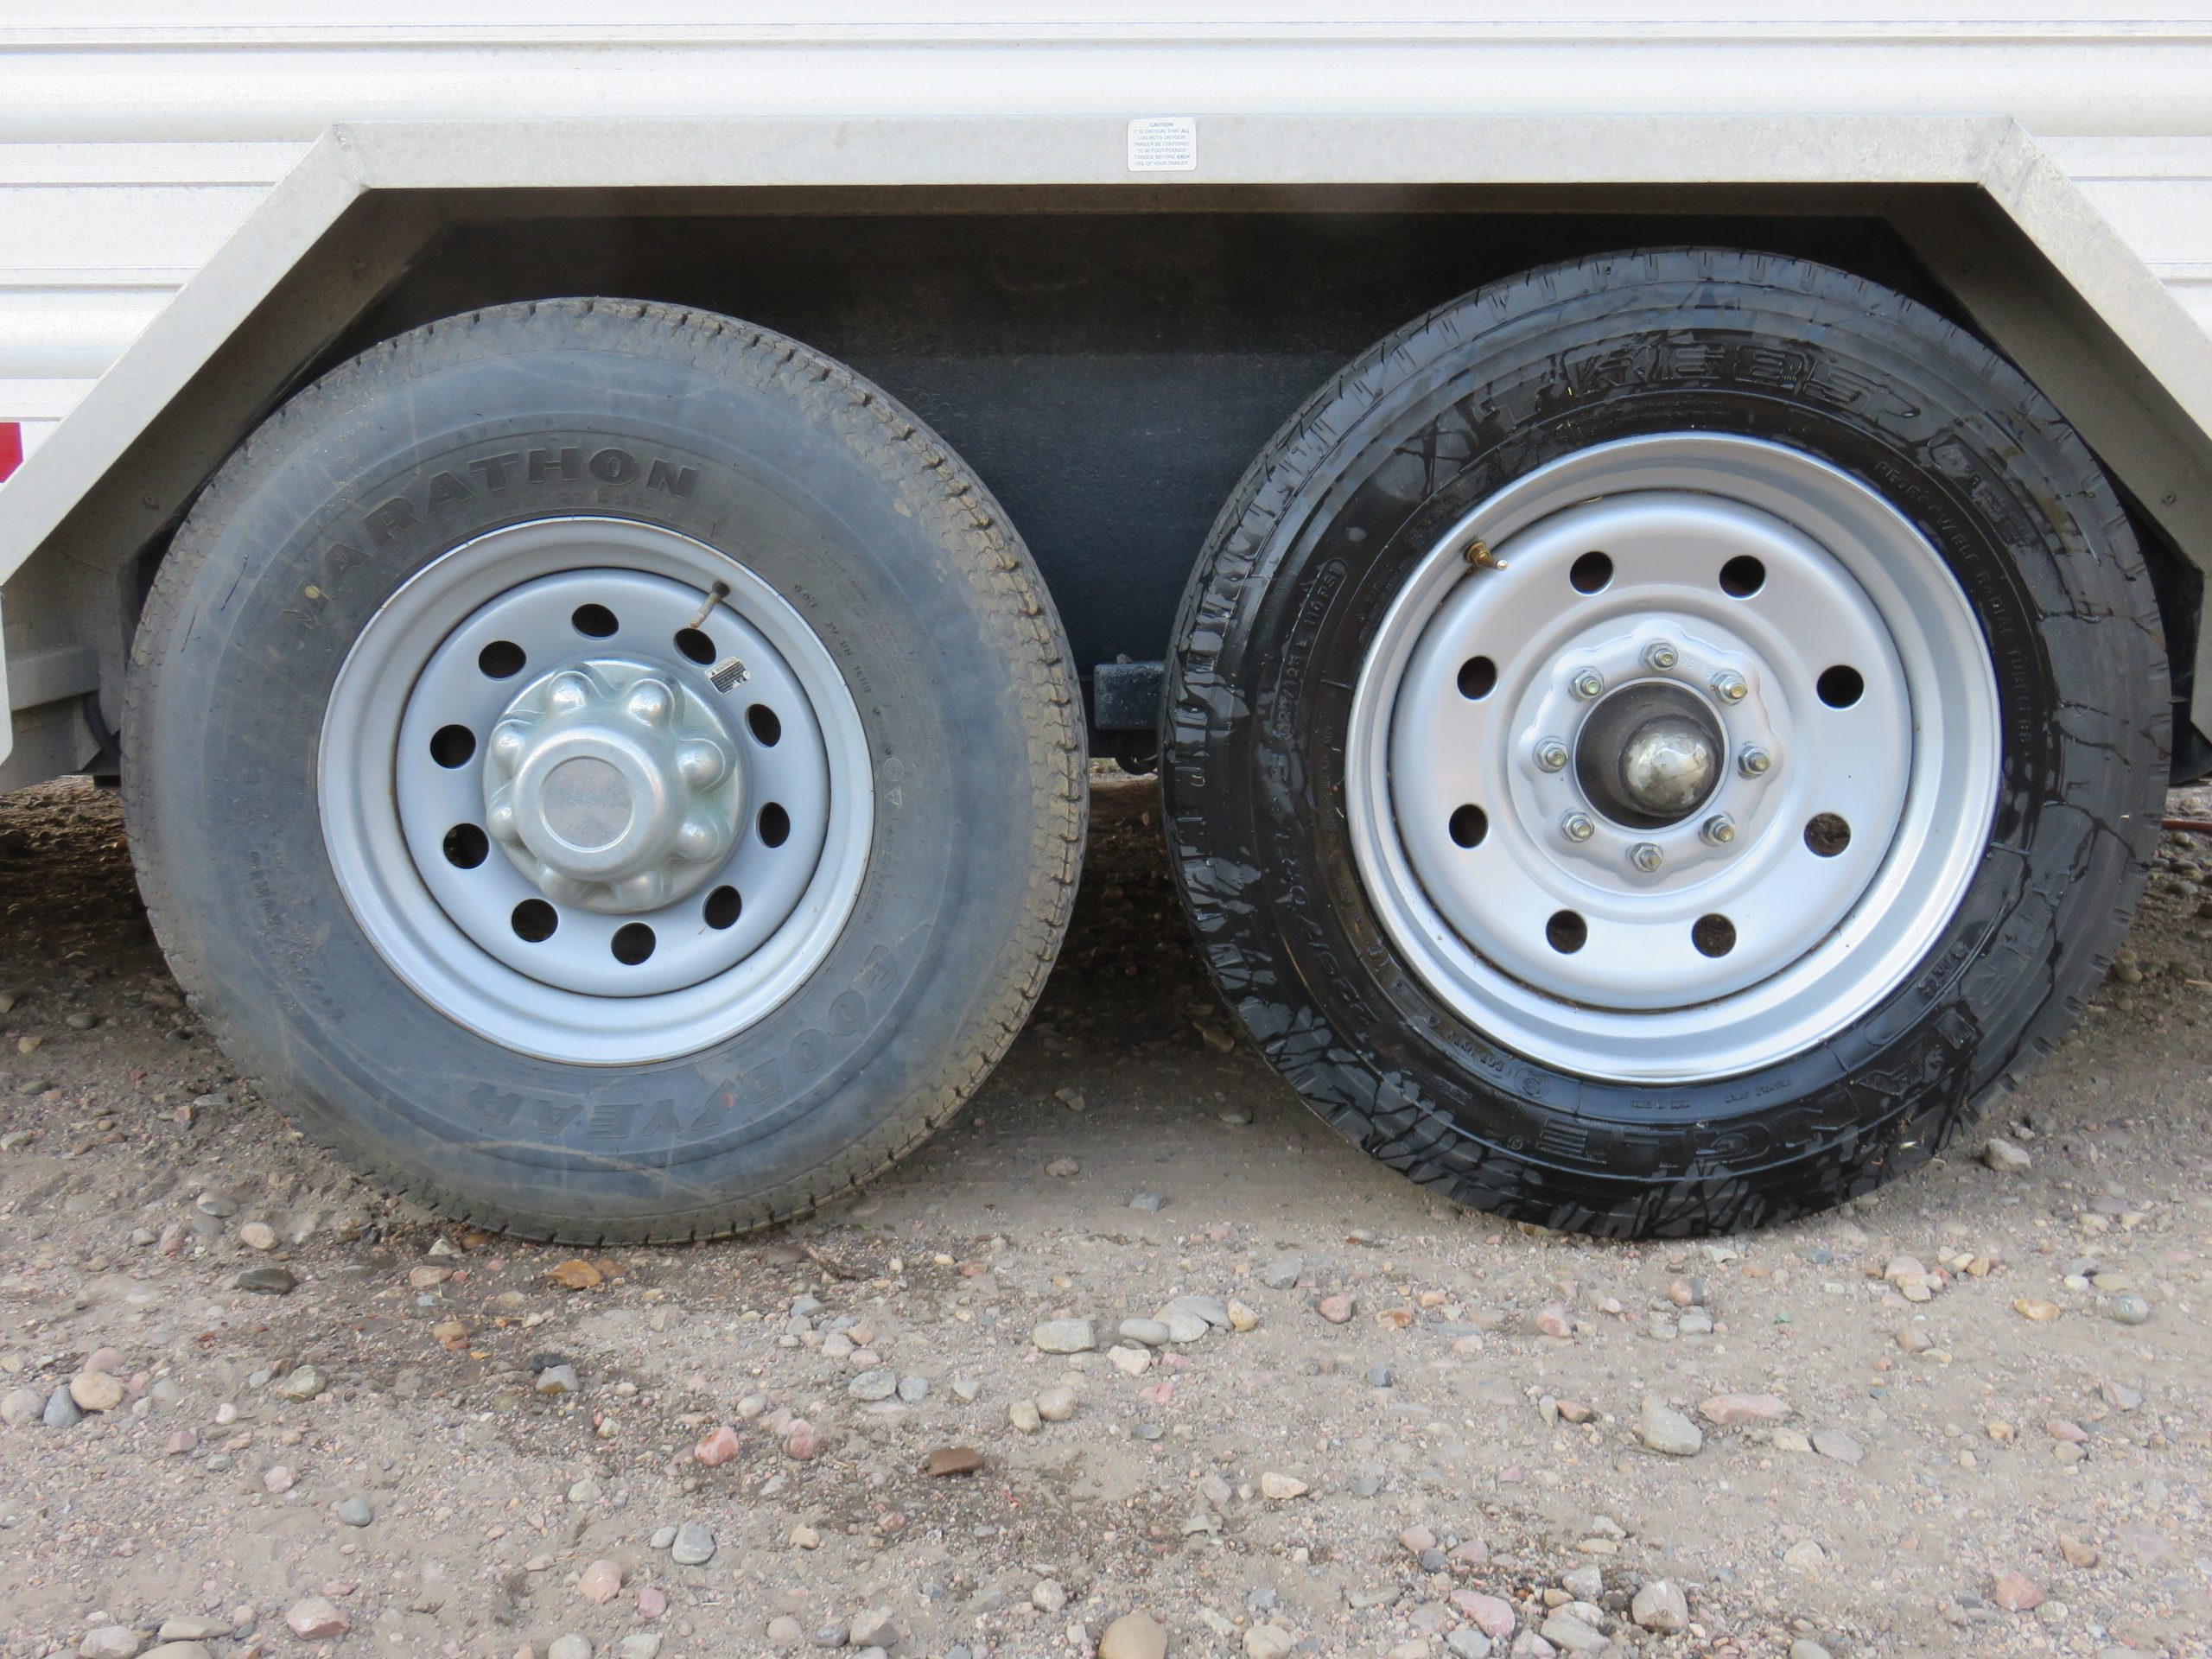 Boar Trailer Tire And Wheel Trailer Towing Advice